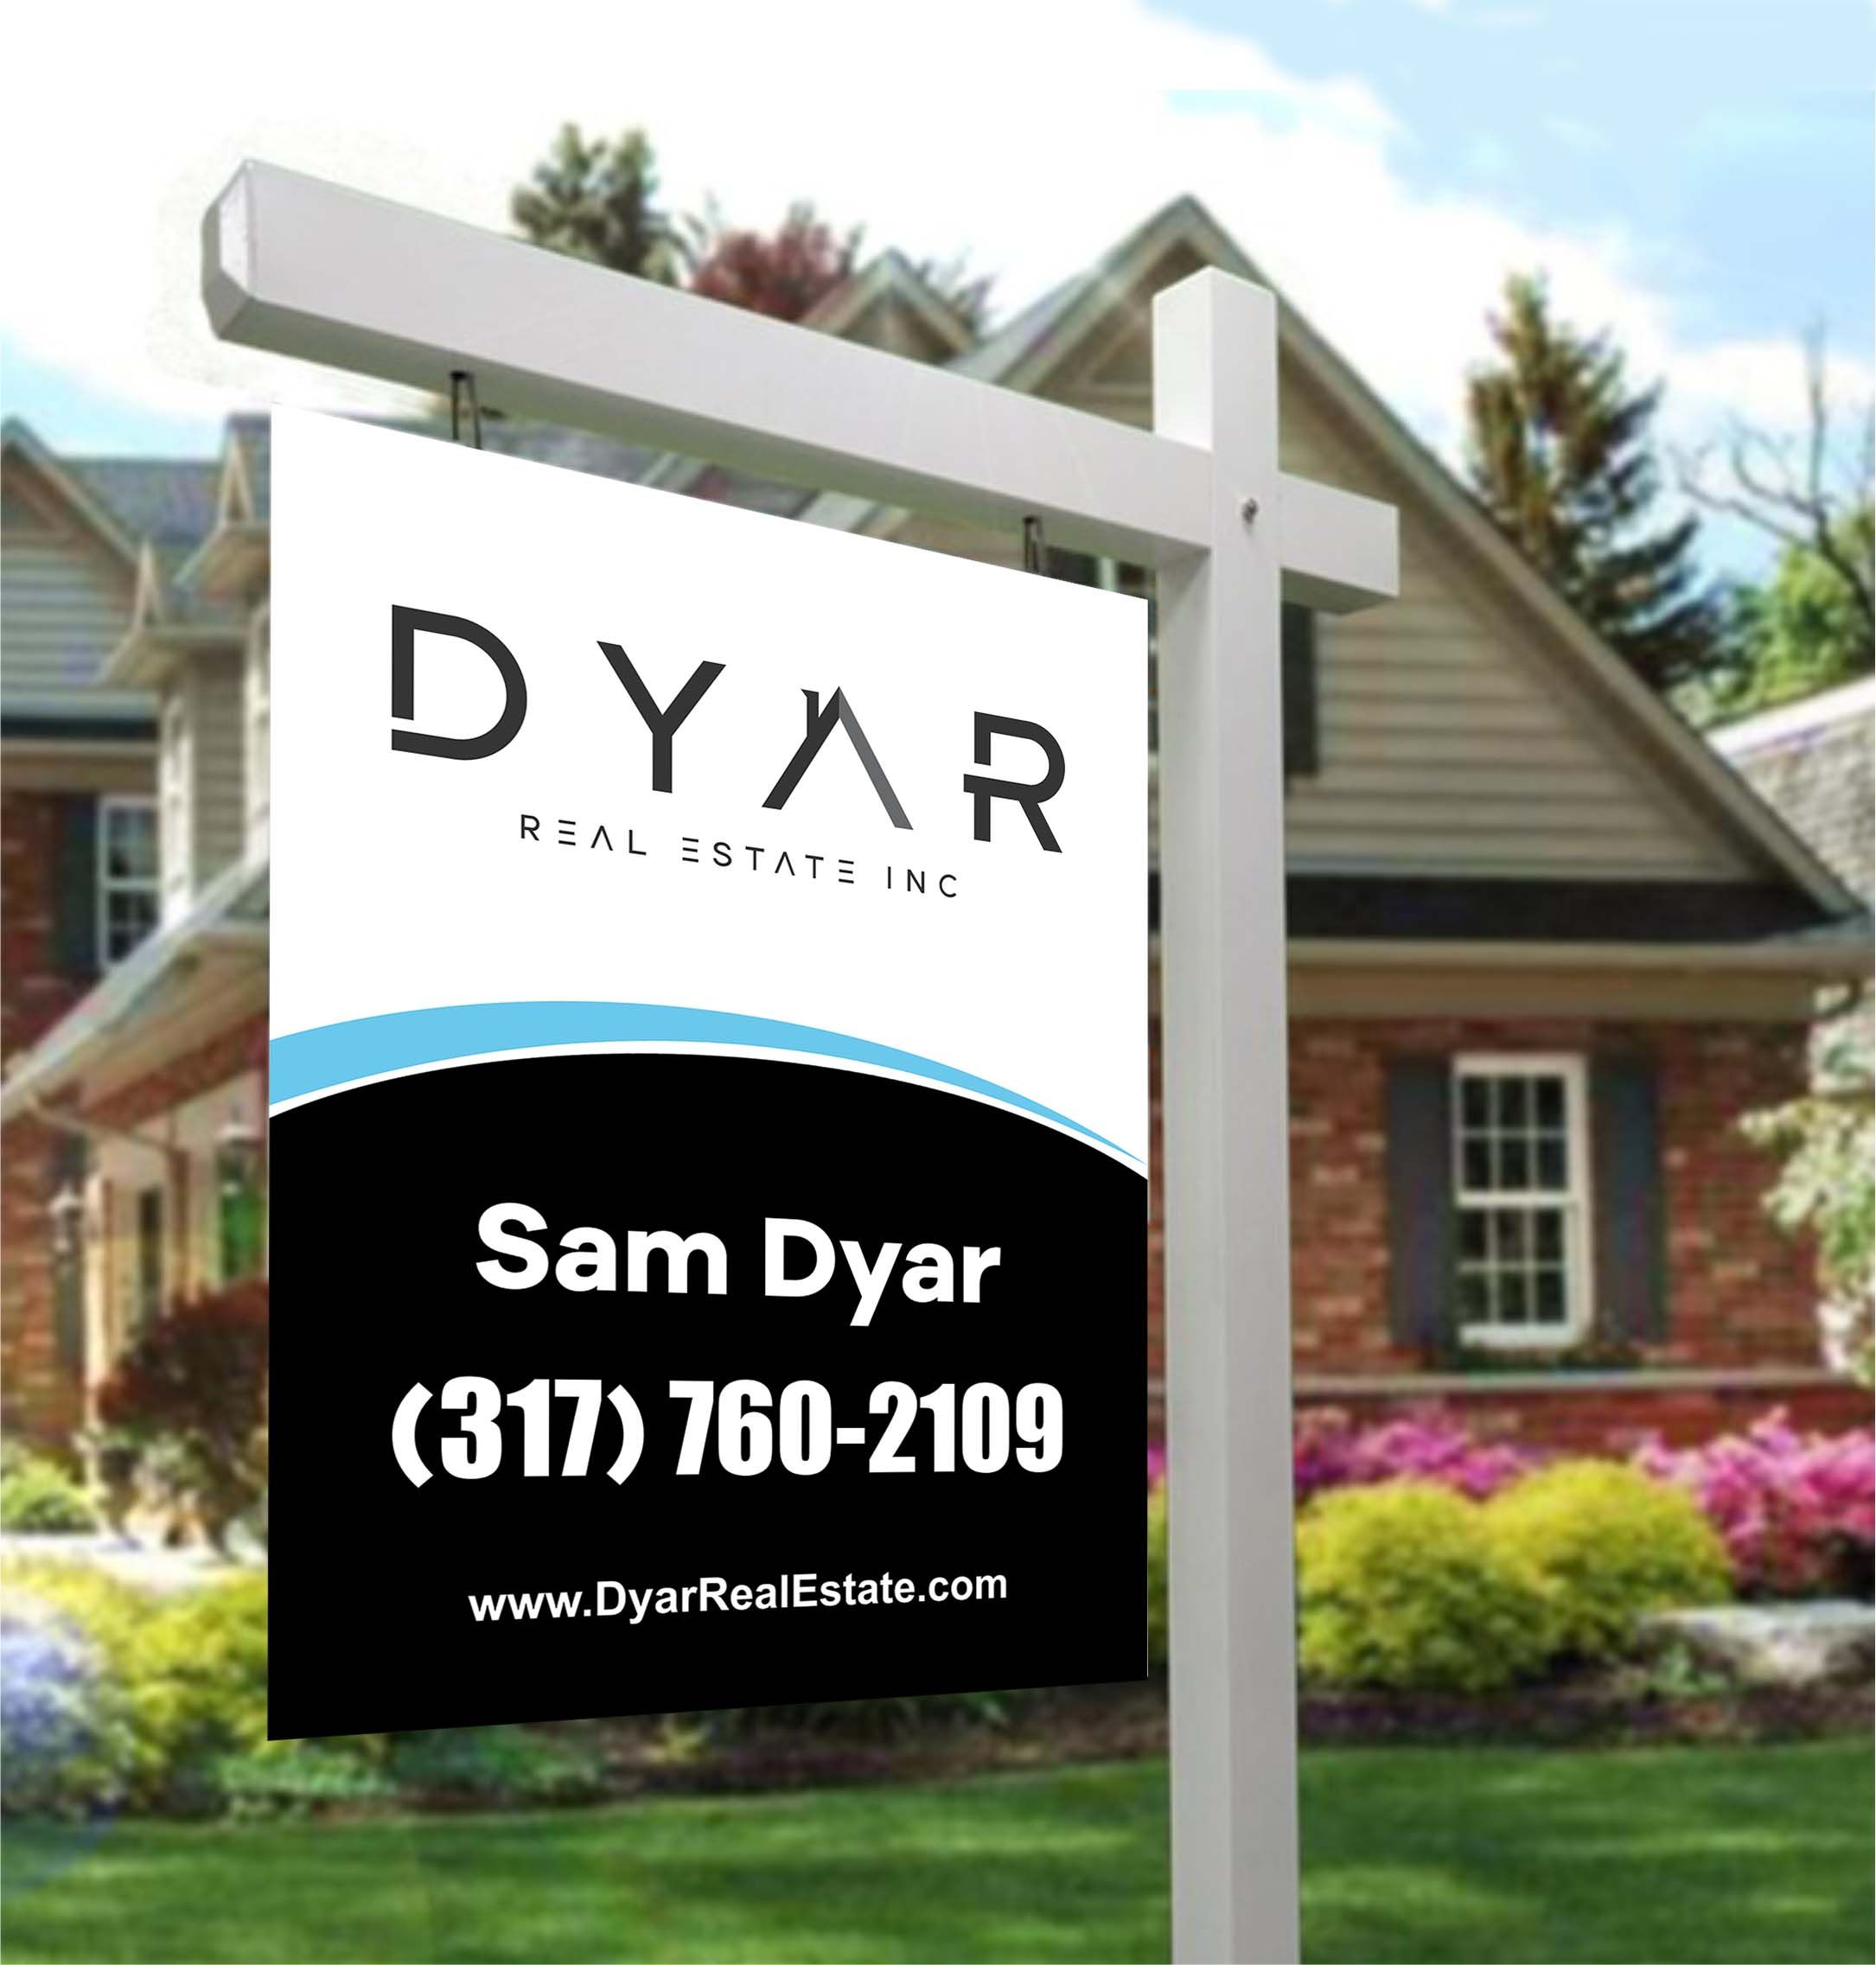 Virtualine I Will Design Professional Real Estate Yard Sign For 25 On Fiverr Com Real Estate Yard Signs Real Estate Sign Design Yard Signs Yard of the month sign template